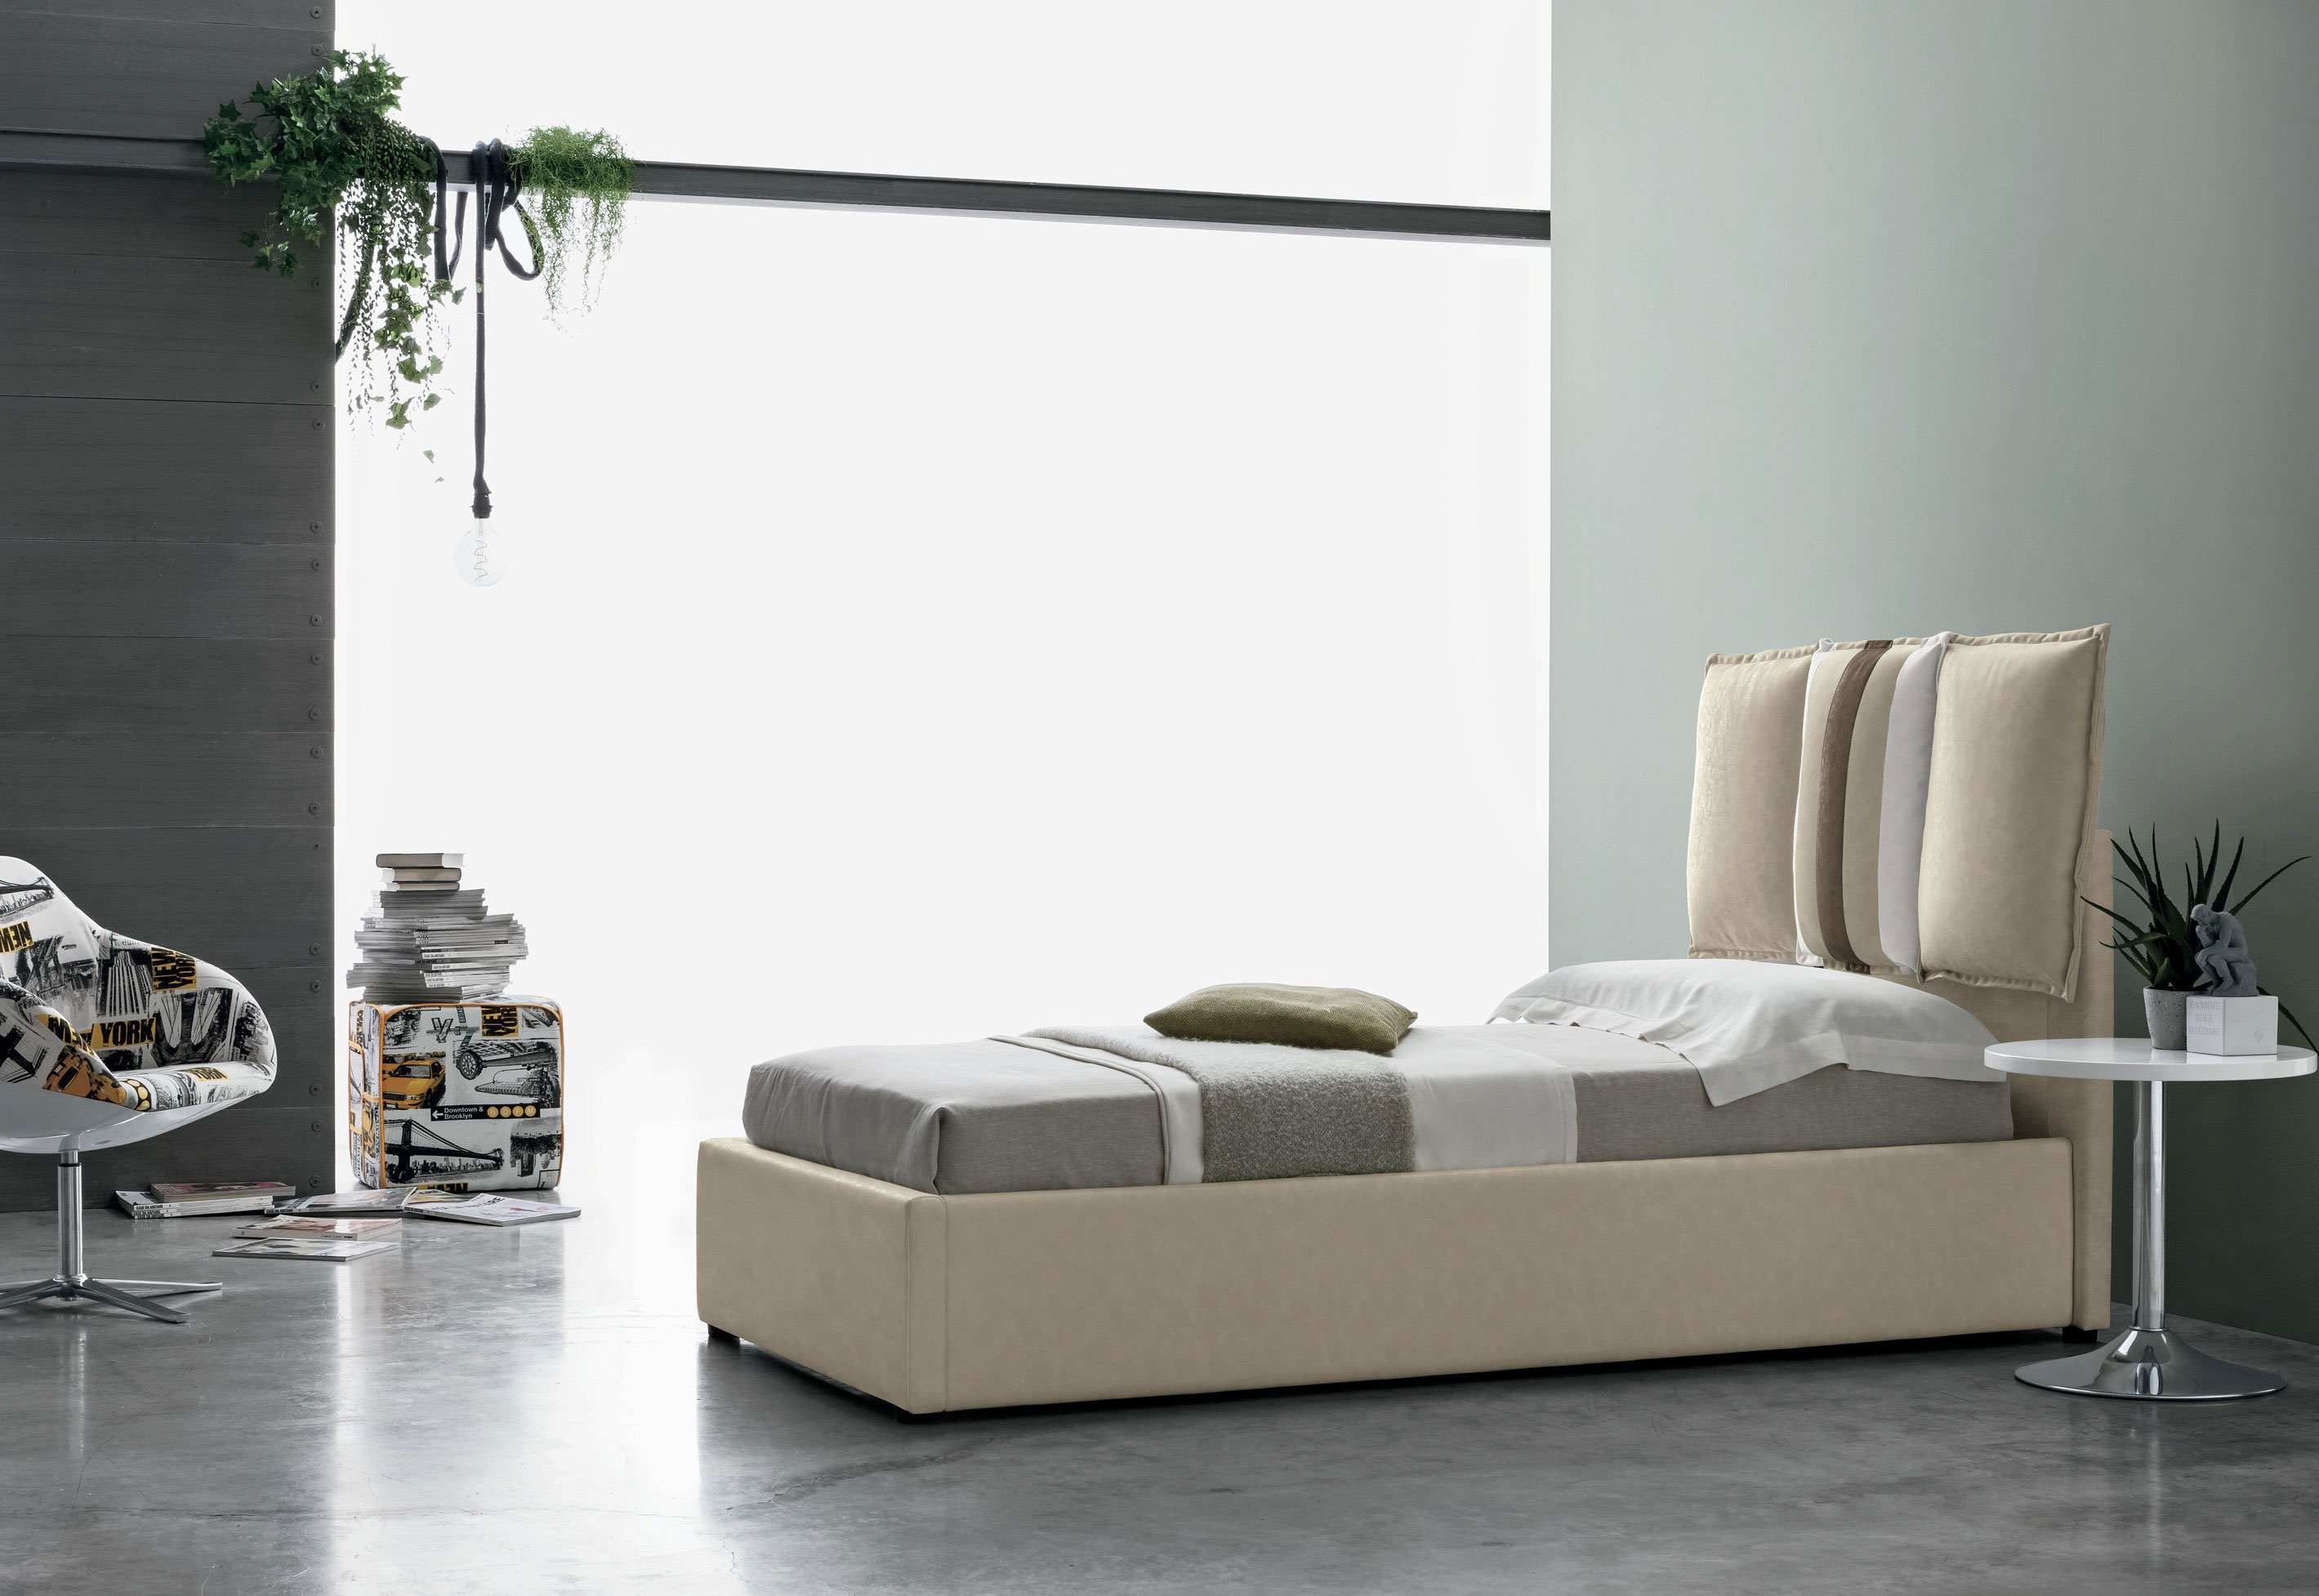 beige bed with small height legs comfy cushioned headboard, fabric beige bed modern for small space, single bed, krevati ifasmatino me maxilaria sto piso meros tou me xamila podia,